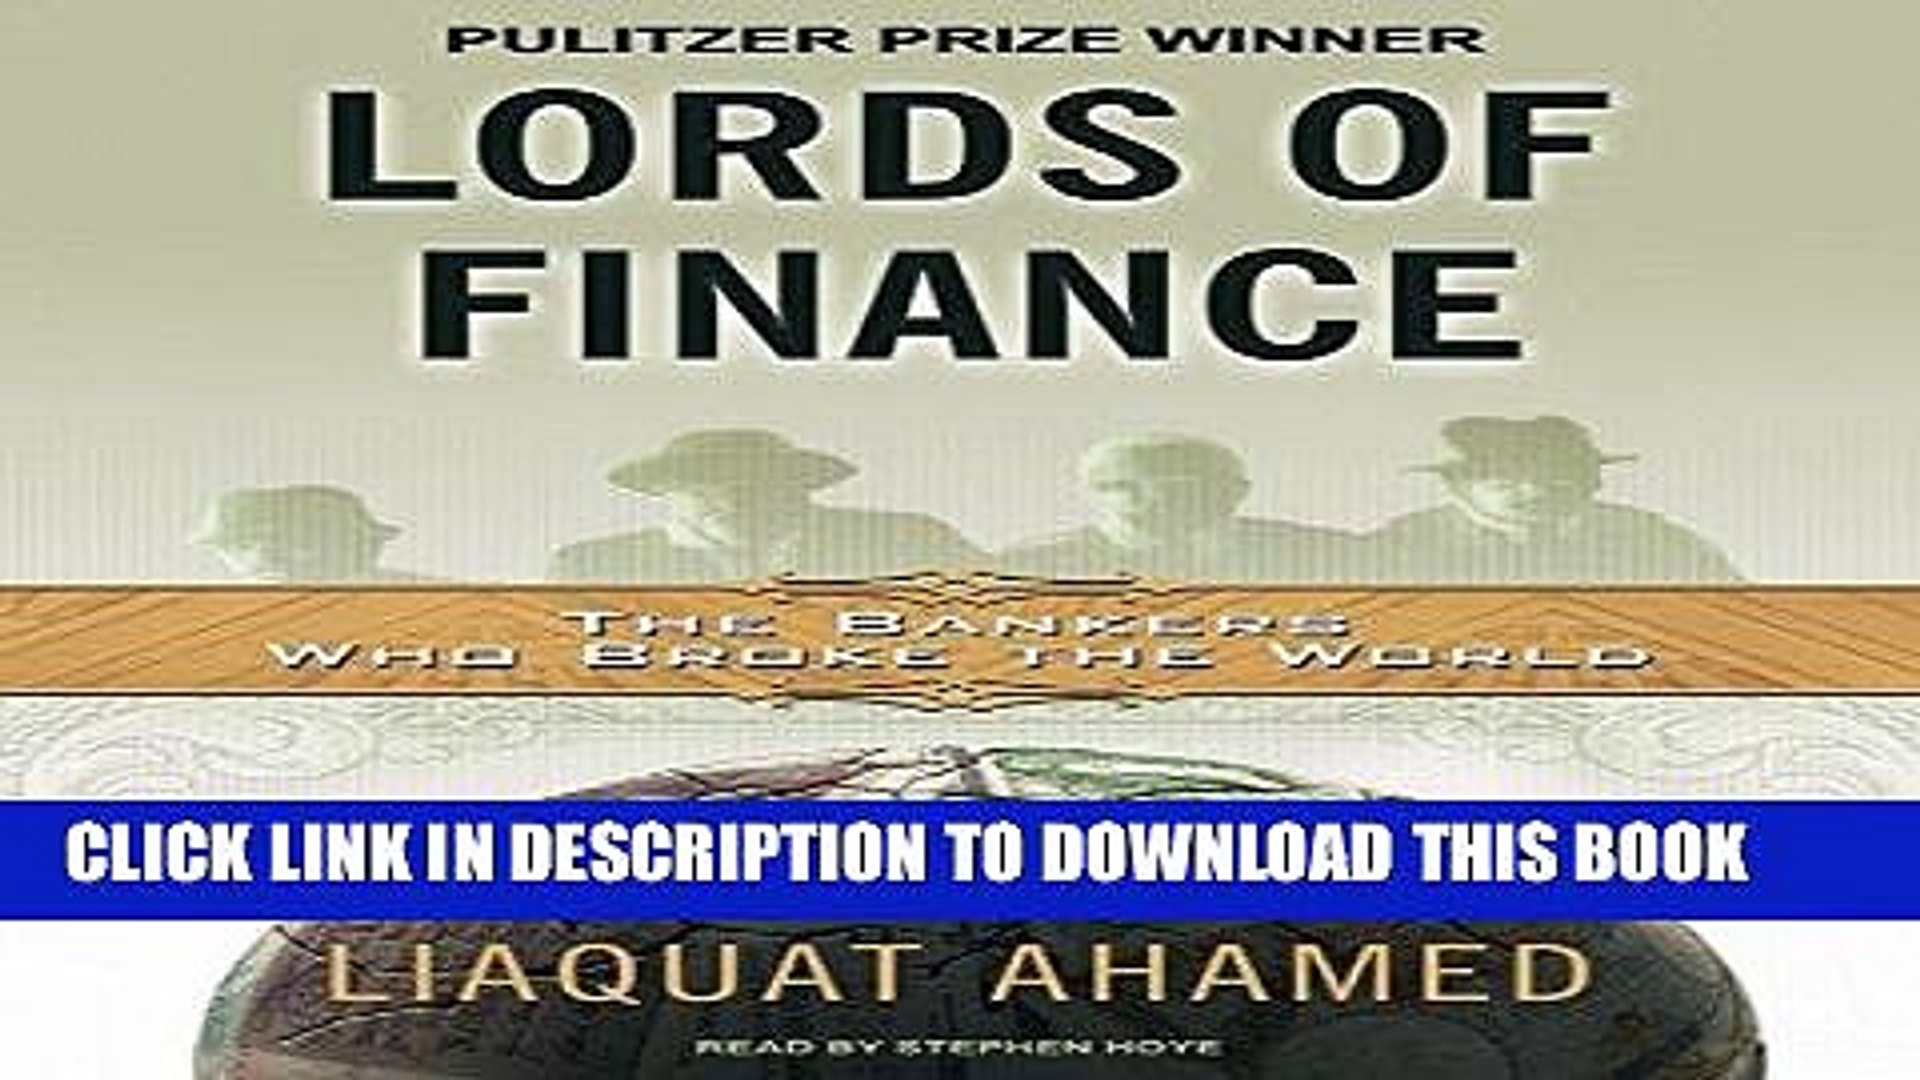 [PDF] Epub Lords of Finance: The Bankers Who Broke the World [MP3 AUDIO] [UNABRIDGED] (MP3 CD)